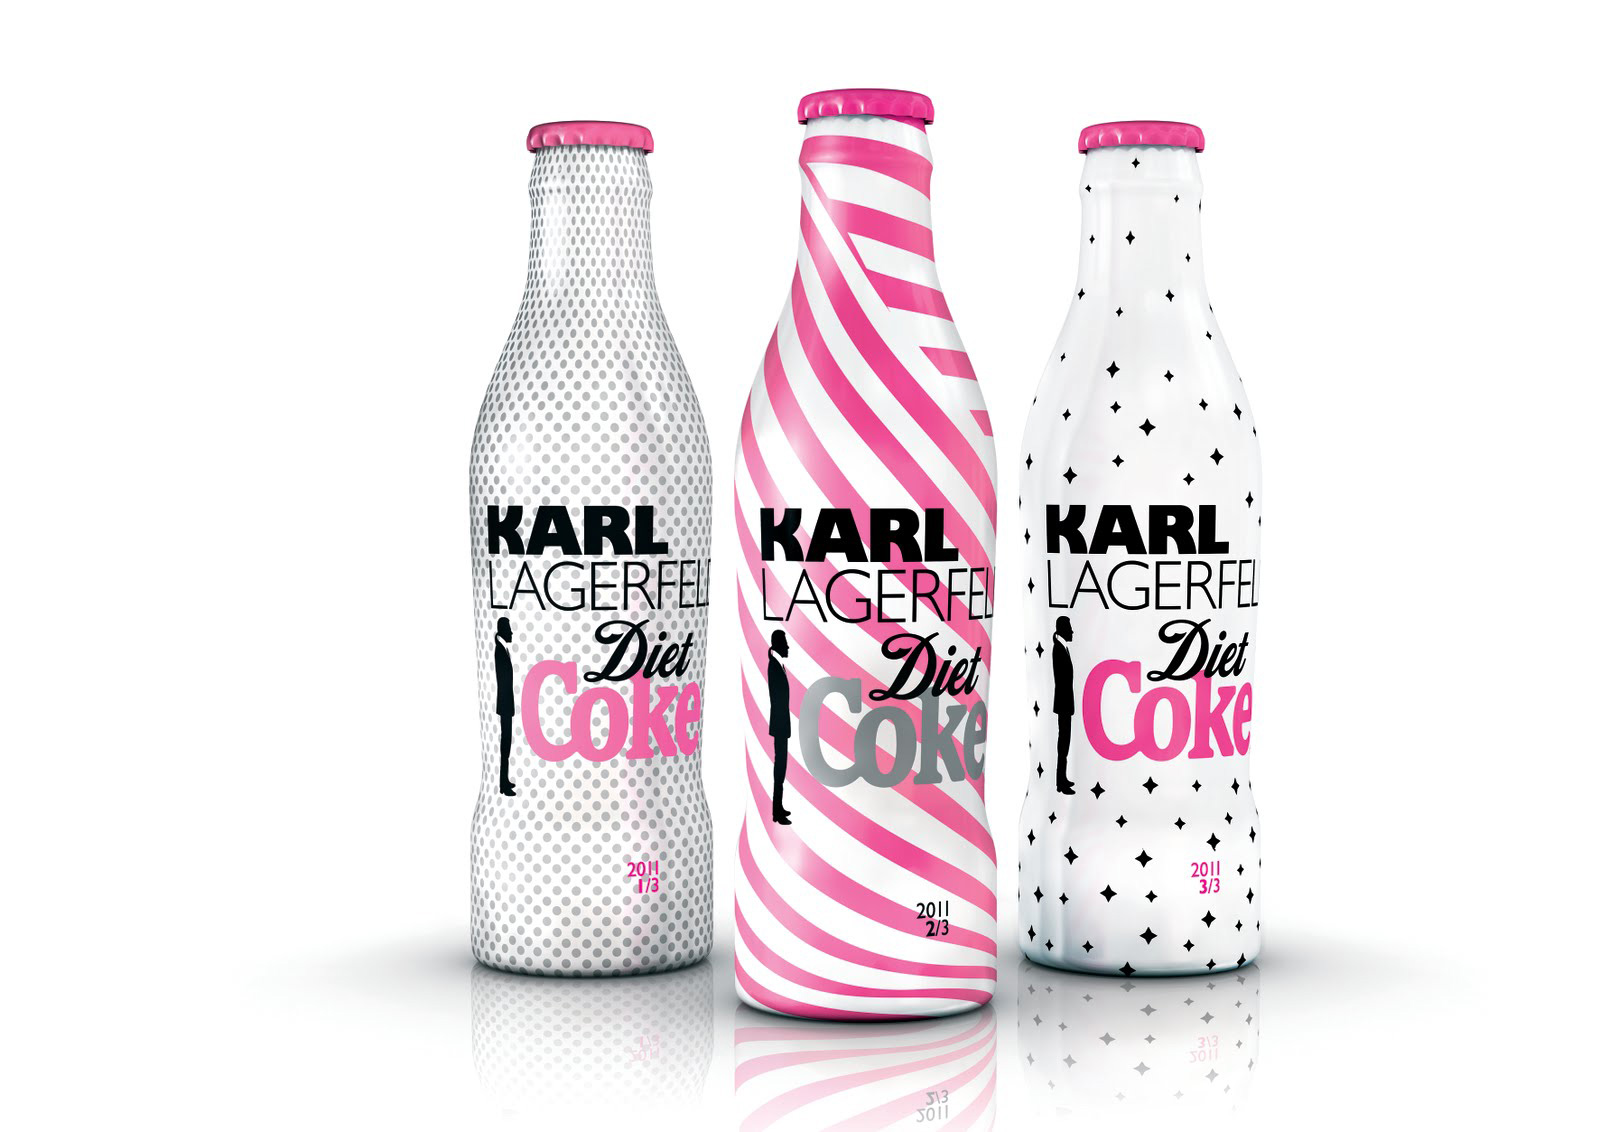 Karl Lagerfeld Designs Lovely Diet Coke Bottles